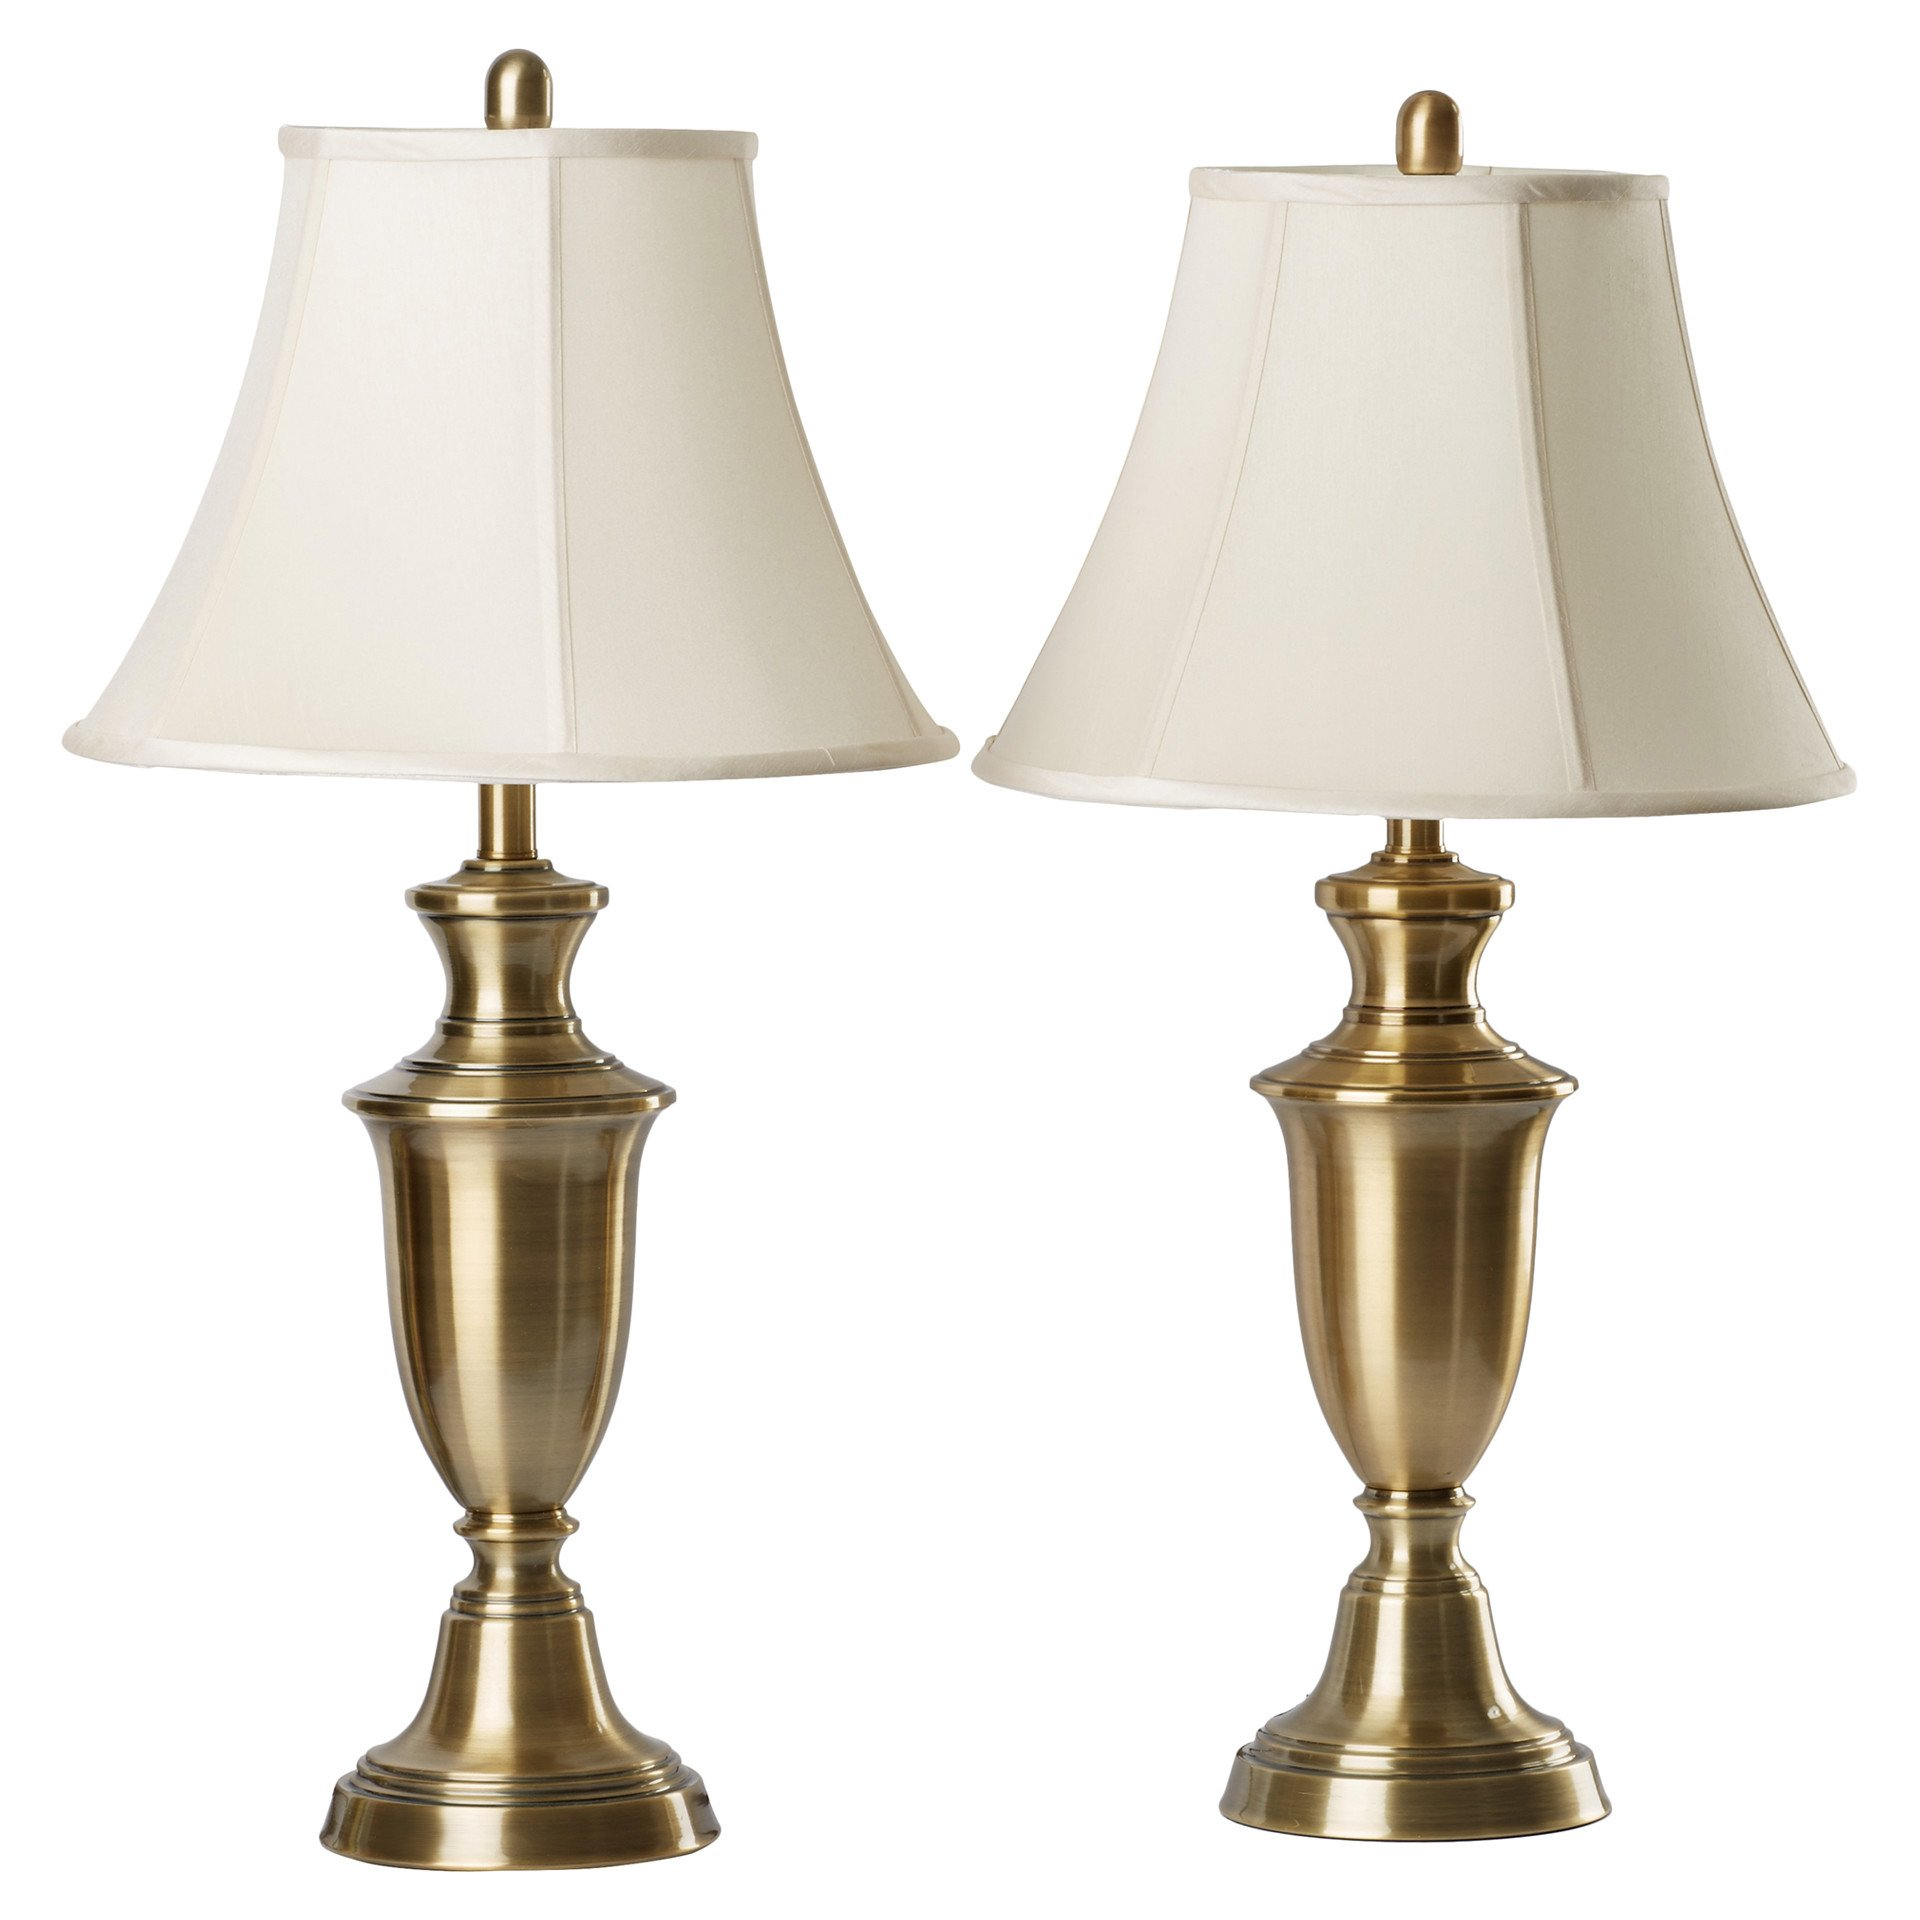 """30.5"""" Antique Brass Metallic Table Lamp with Cream Fabric Bell Shade (2-Pack)"""